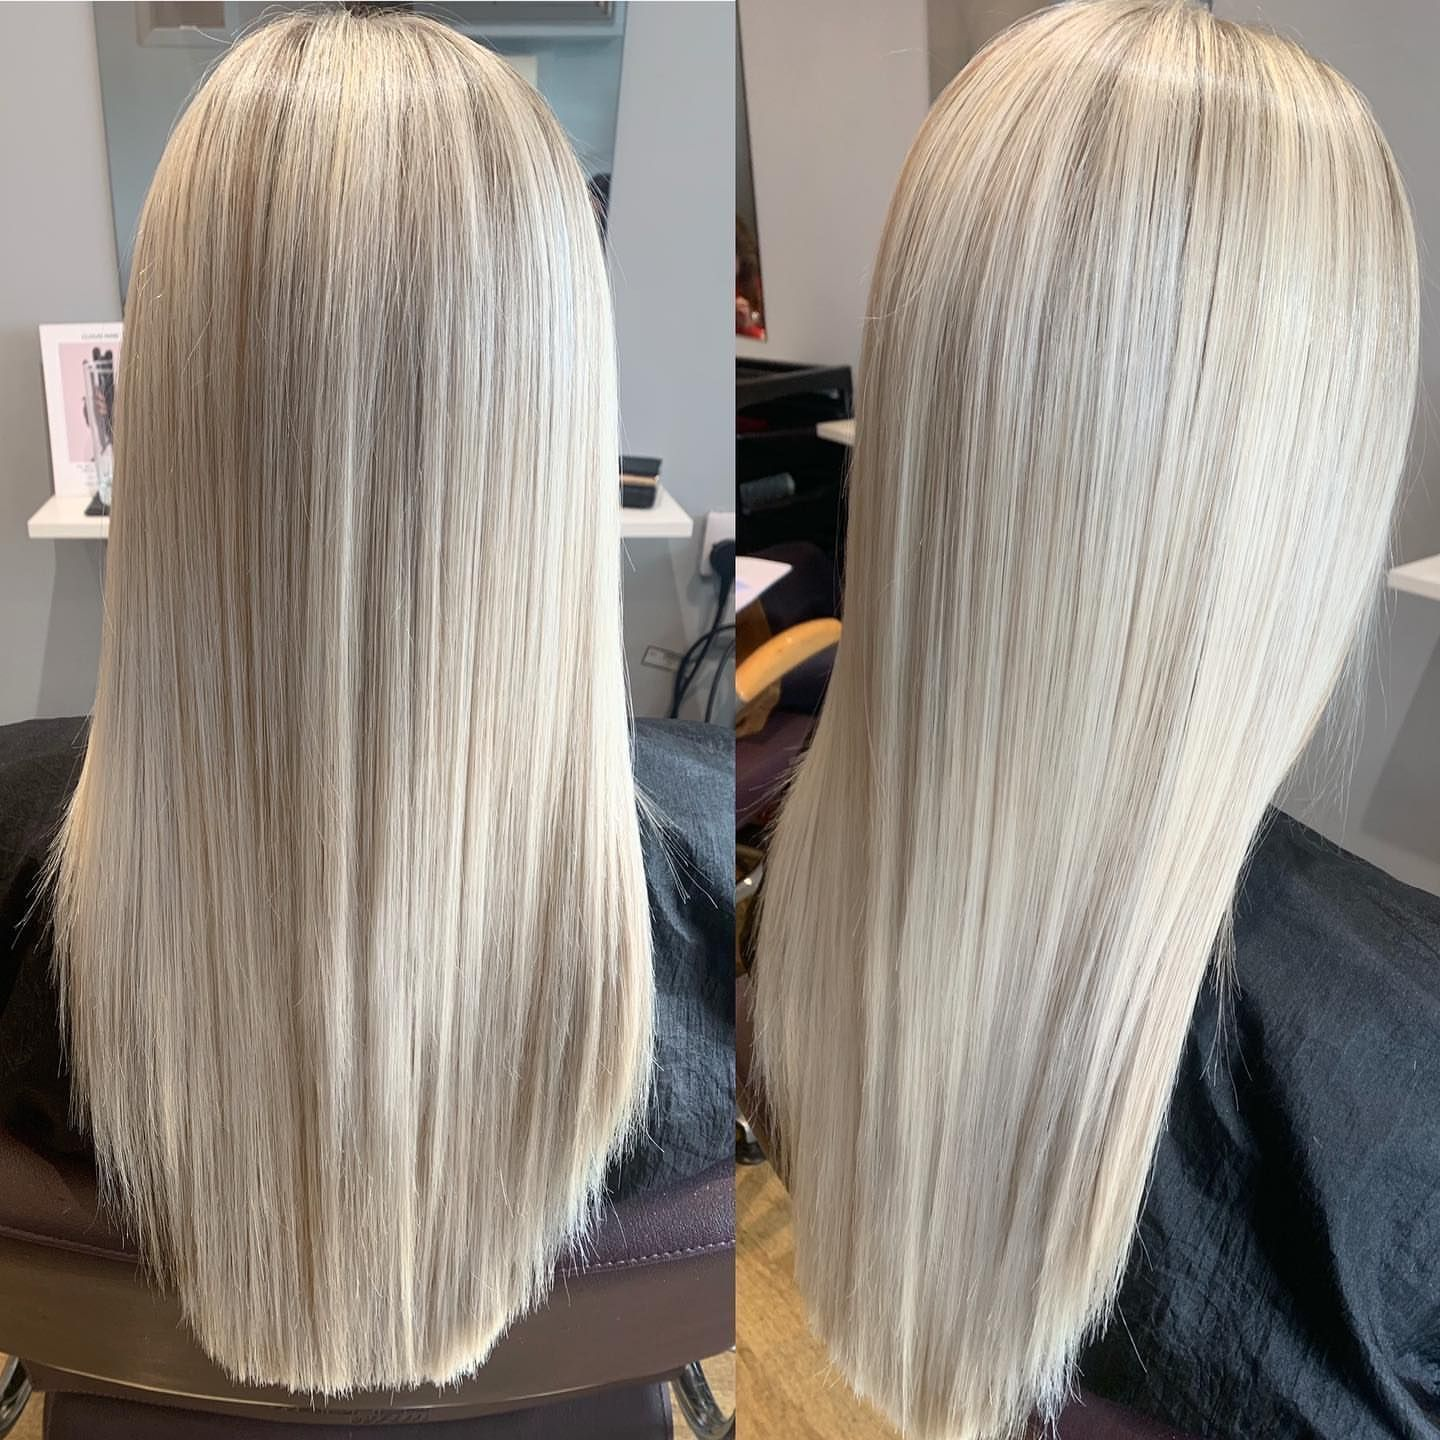 • PLATINUM BLONDE✨ Platinum blonde highlights and smooth finished with added @kebelo bondage.  #hairgoals #hairenvy #hairtrends #hairtransformation #platinumblonde #blonde #highlights #haircolour #platinumblondehighlights • PLATINUM BLONDE✨ Platinum blonde highlights and smooth finished with added @kebelo bondage.  #hairgoals #hairenvy #hairtrends #hairtransformation #platinumblonde #blonde #highlights #haircolour #platinumblondehighlights • PLATINUM BLONDE✨ Platinum blonde highlight #platinumblondehighlights